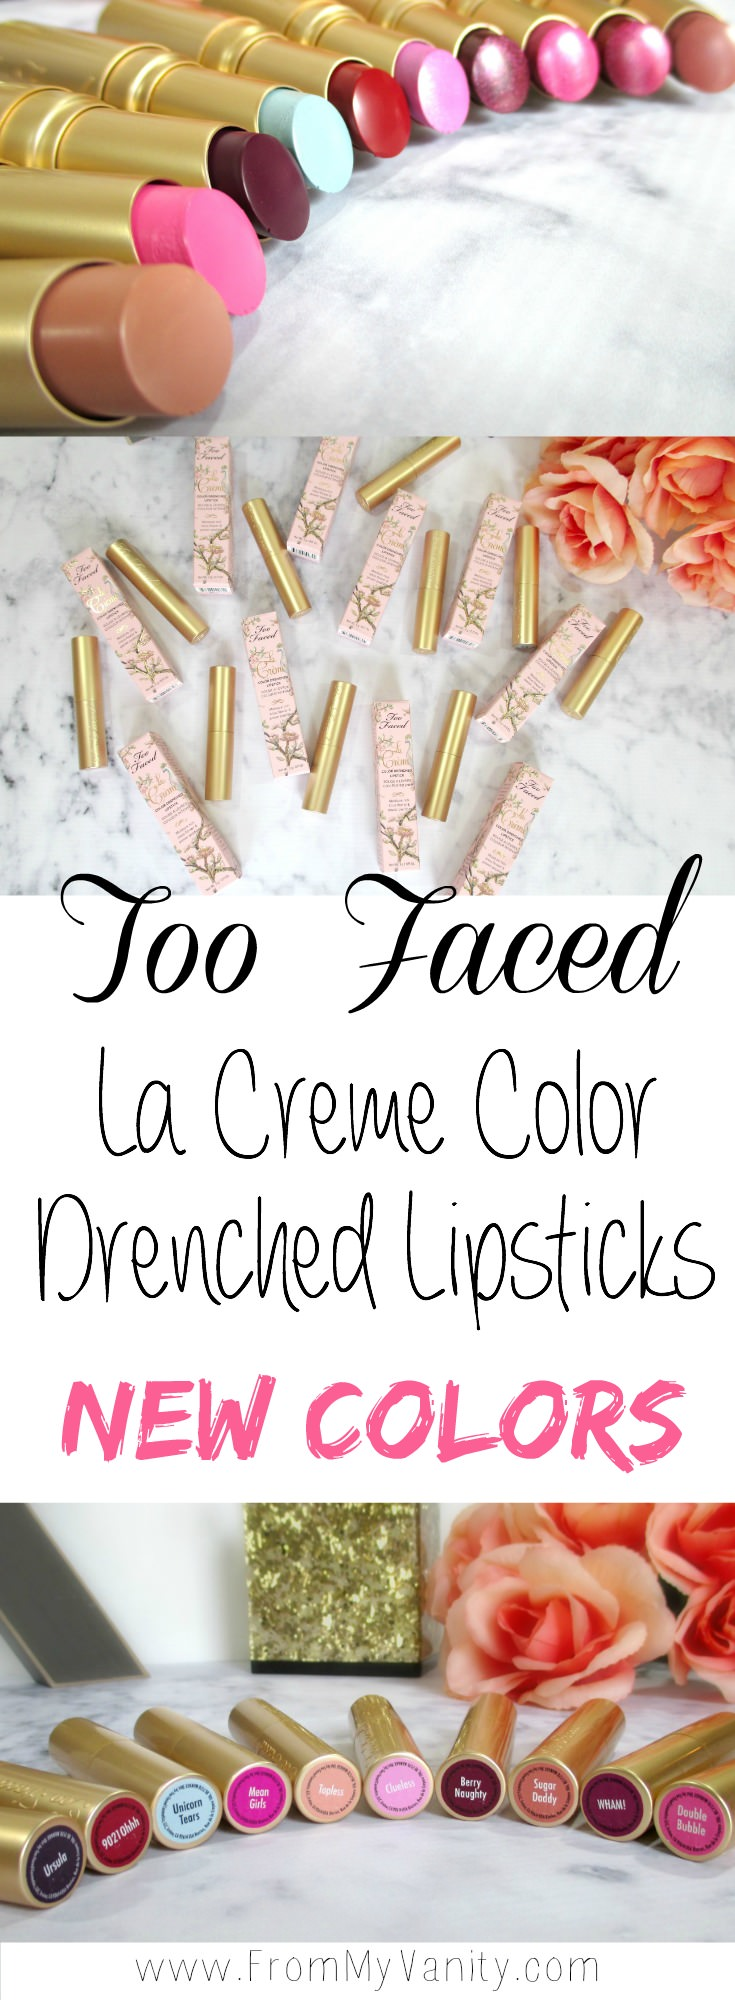 I always love the packaging with the gold tubes -- they have a way of standing out! And with so many unique and fun colors....I want to try them all!